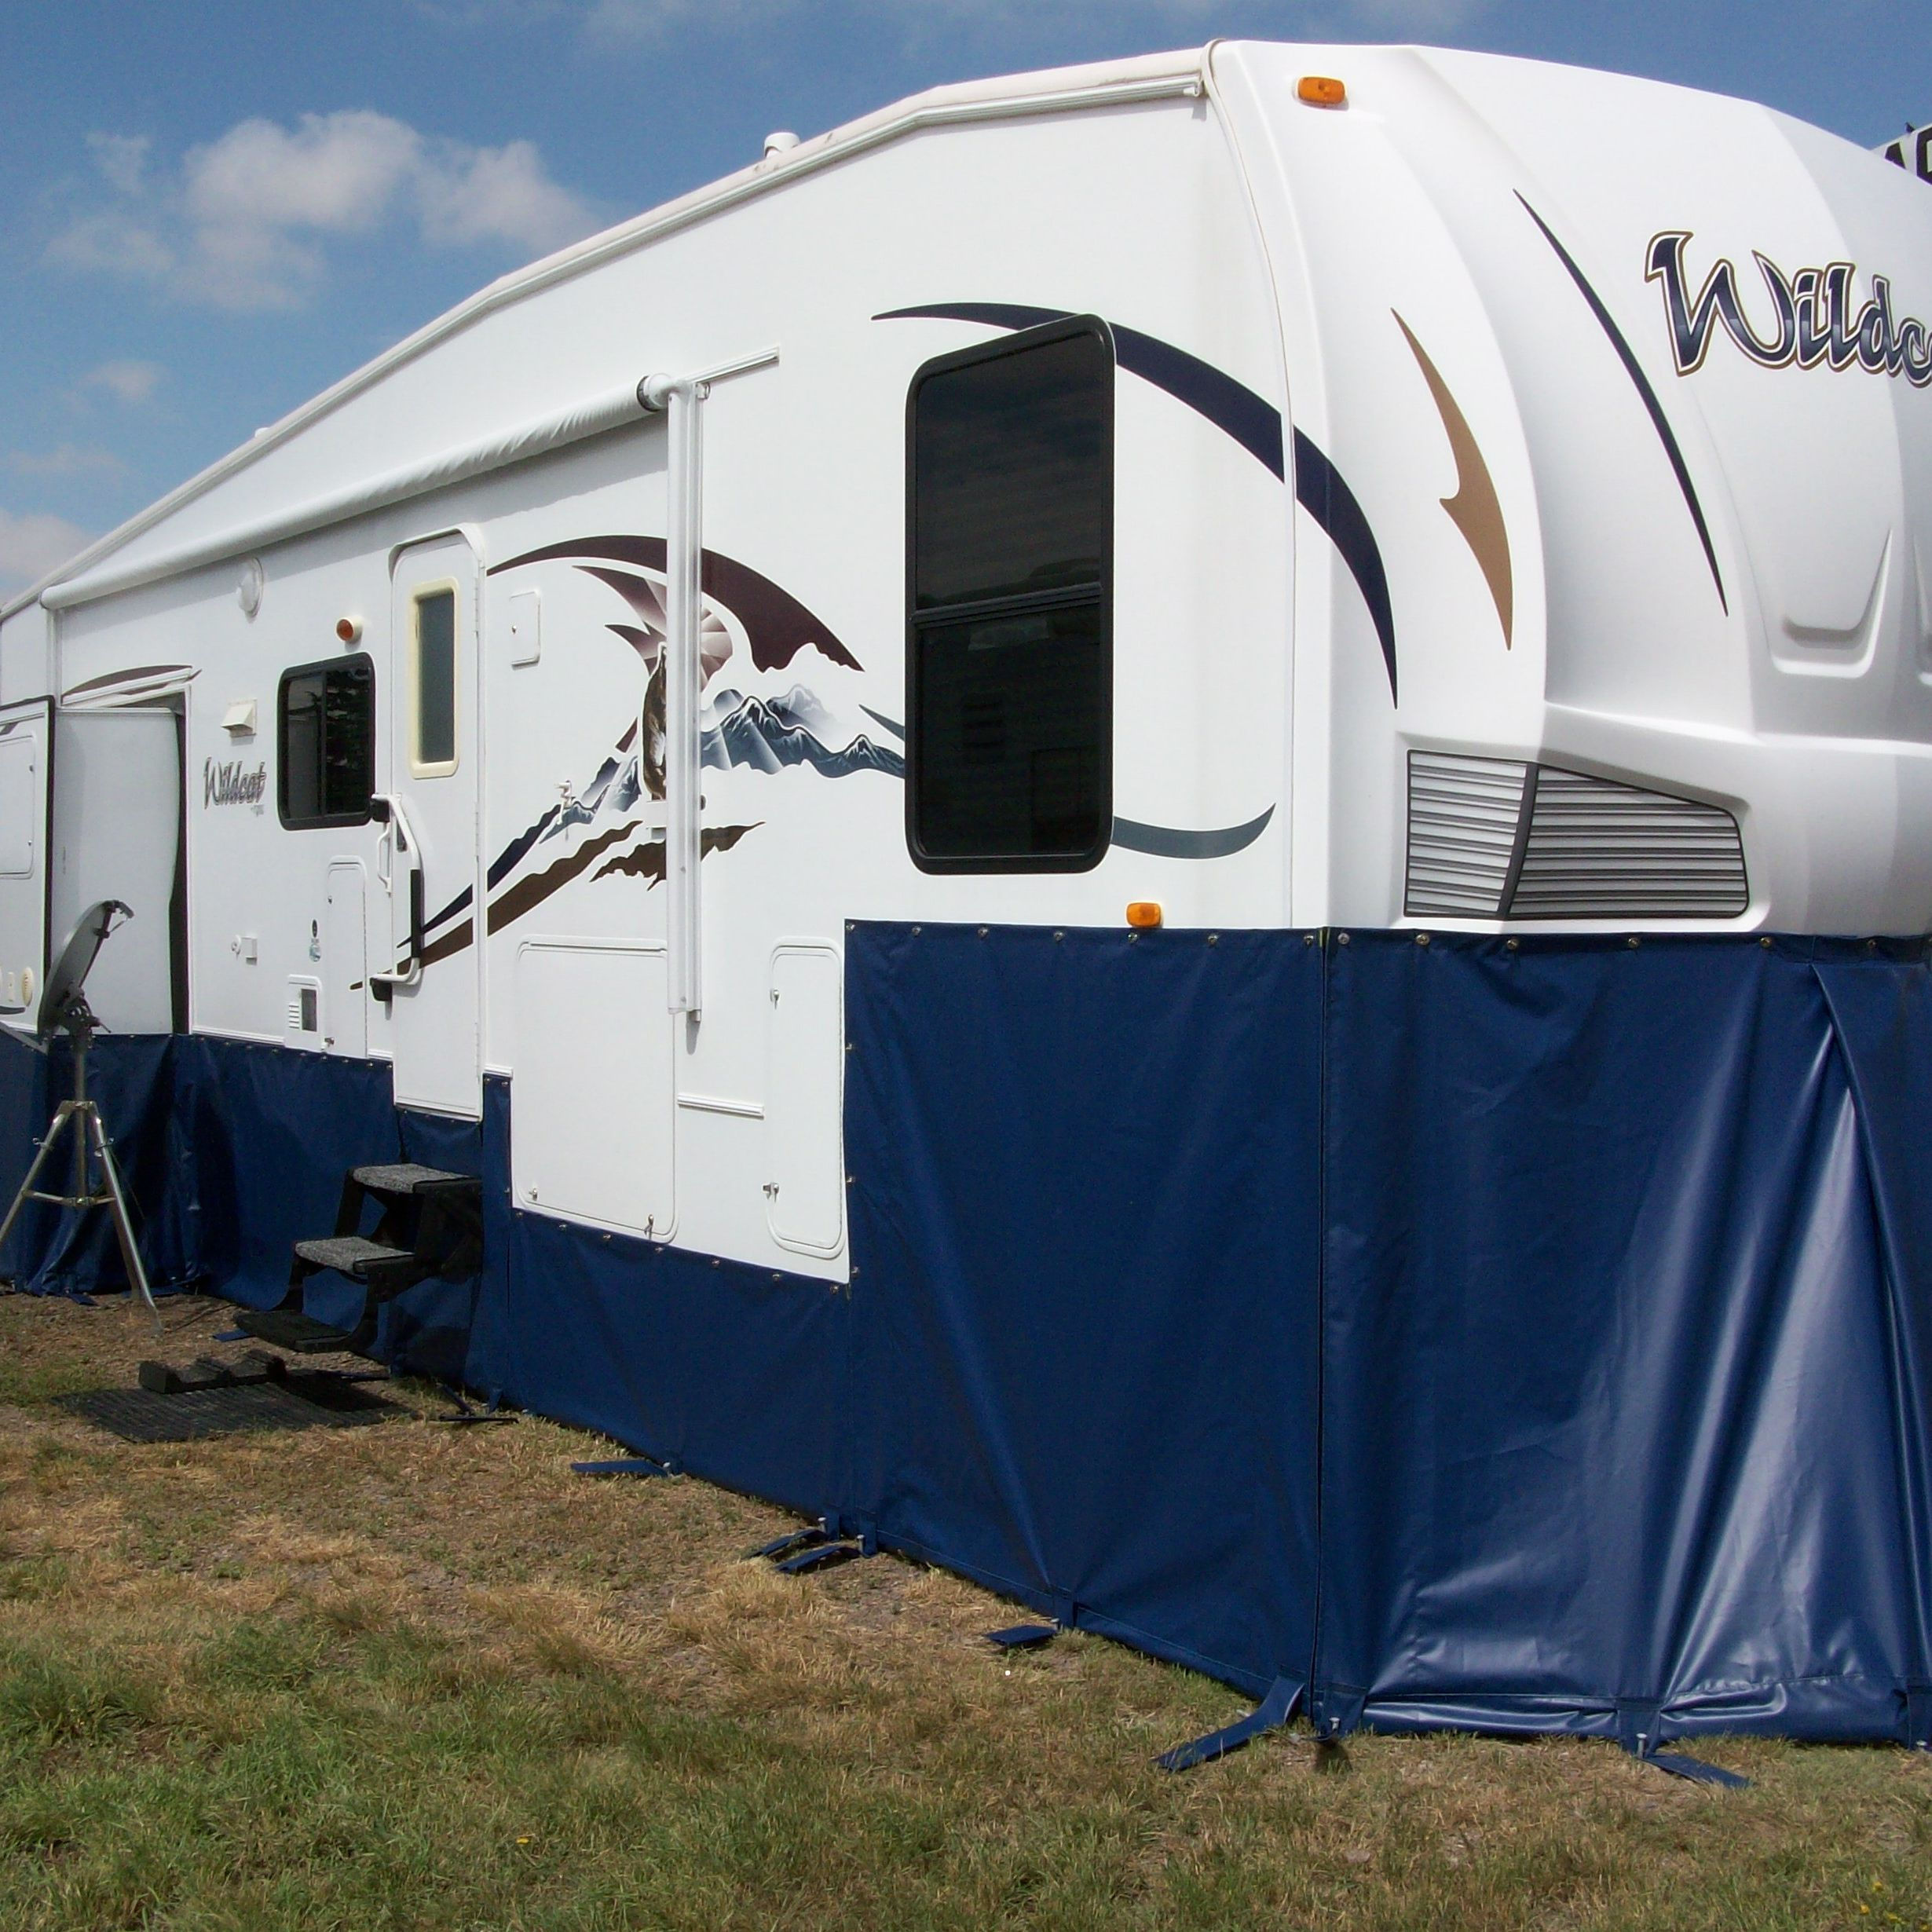 How to Insulate an RV